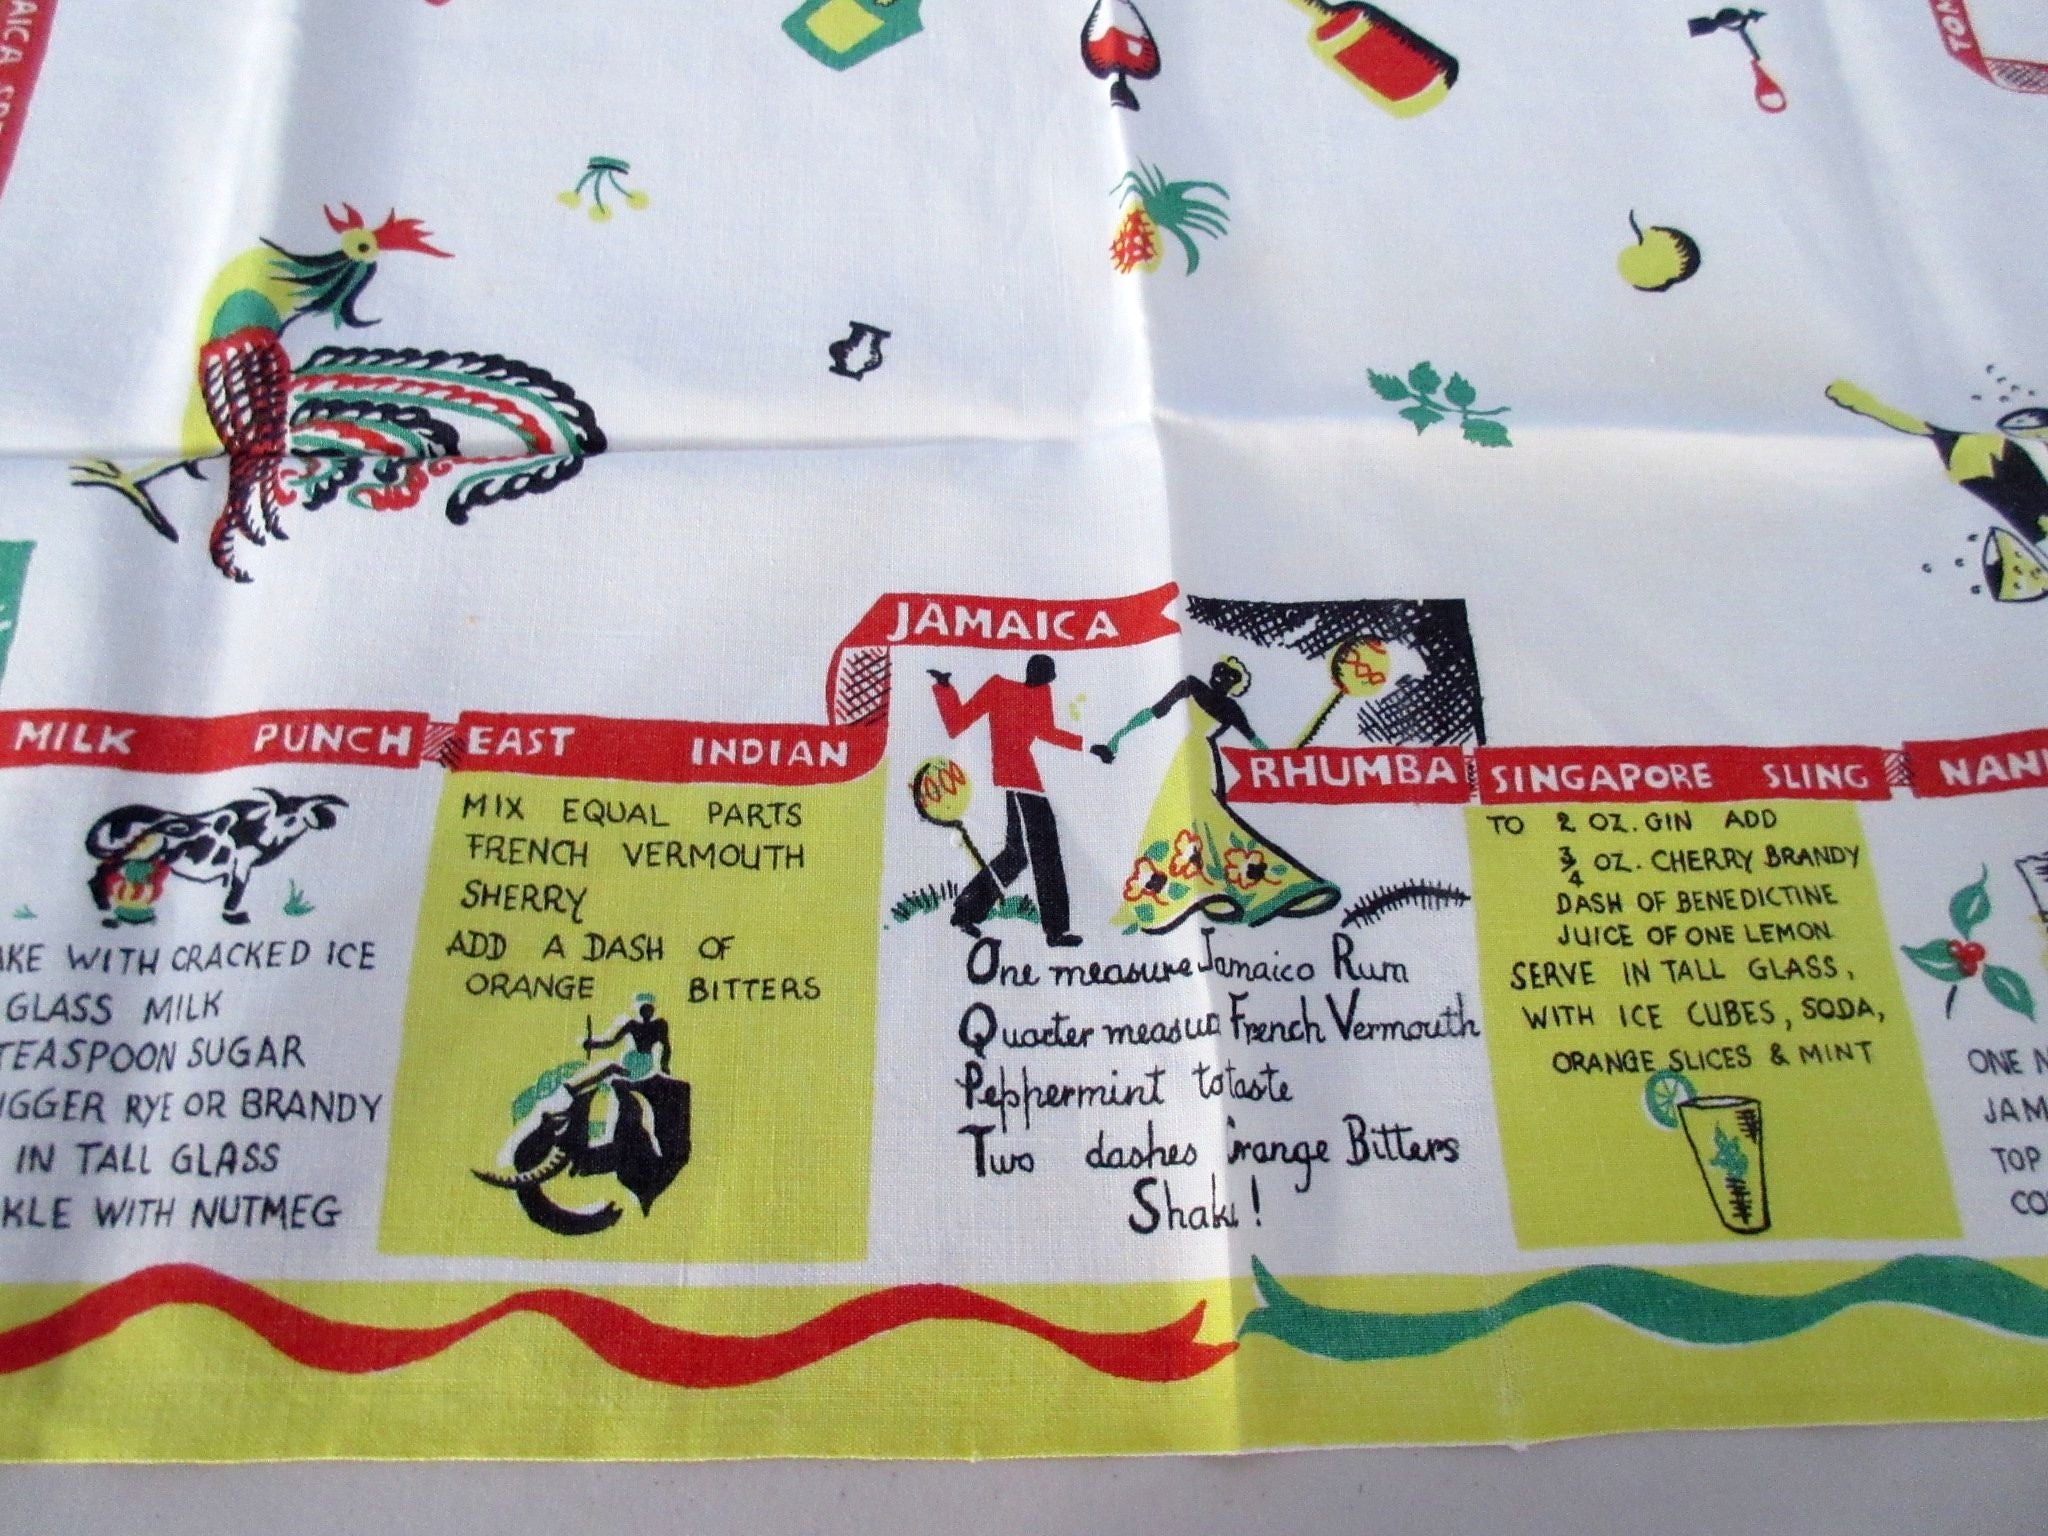 Cartoon Cocktail Beverages Recipes Linen Novelty Vintage Printed Tablecloth (34 X 32)